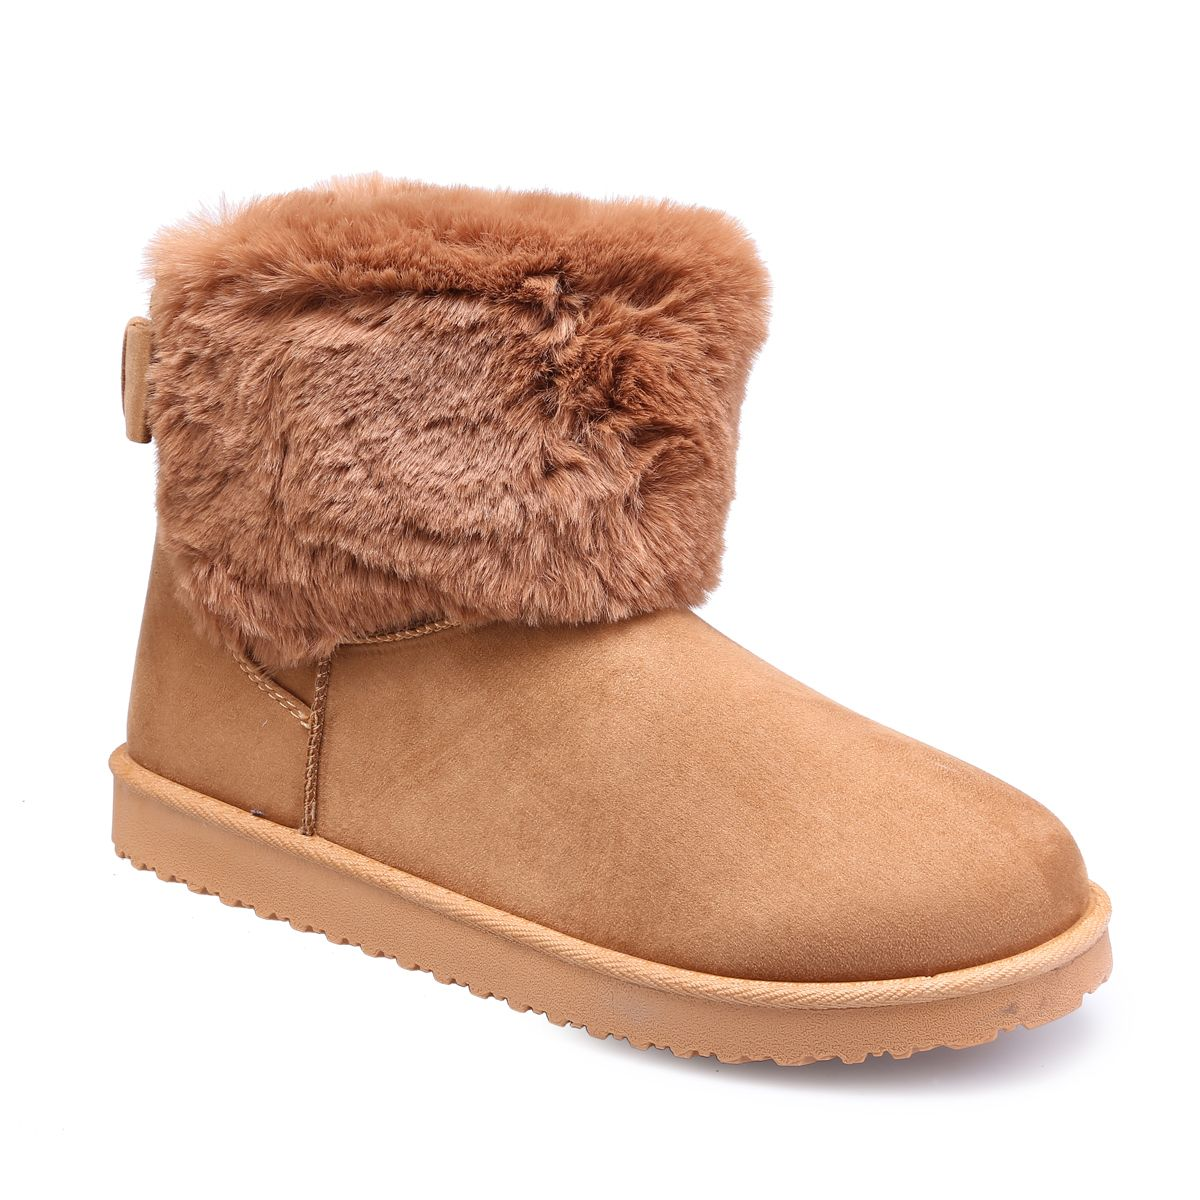 0dee8fc6a Boots camel grandes tailles fausse fourrure